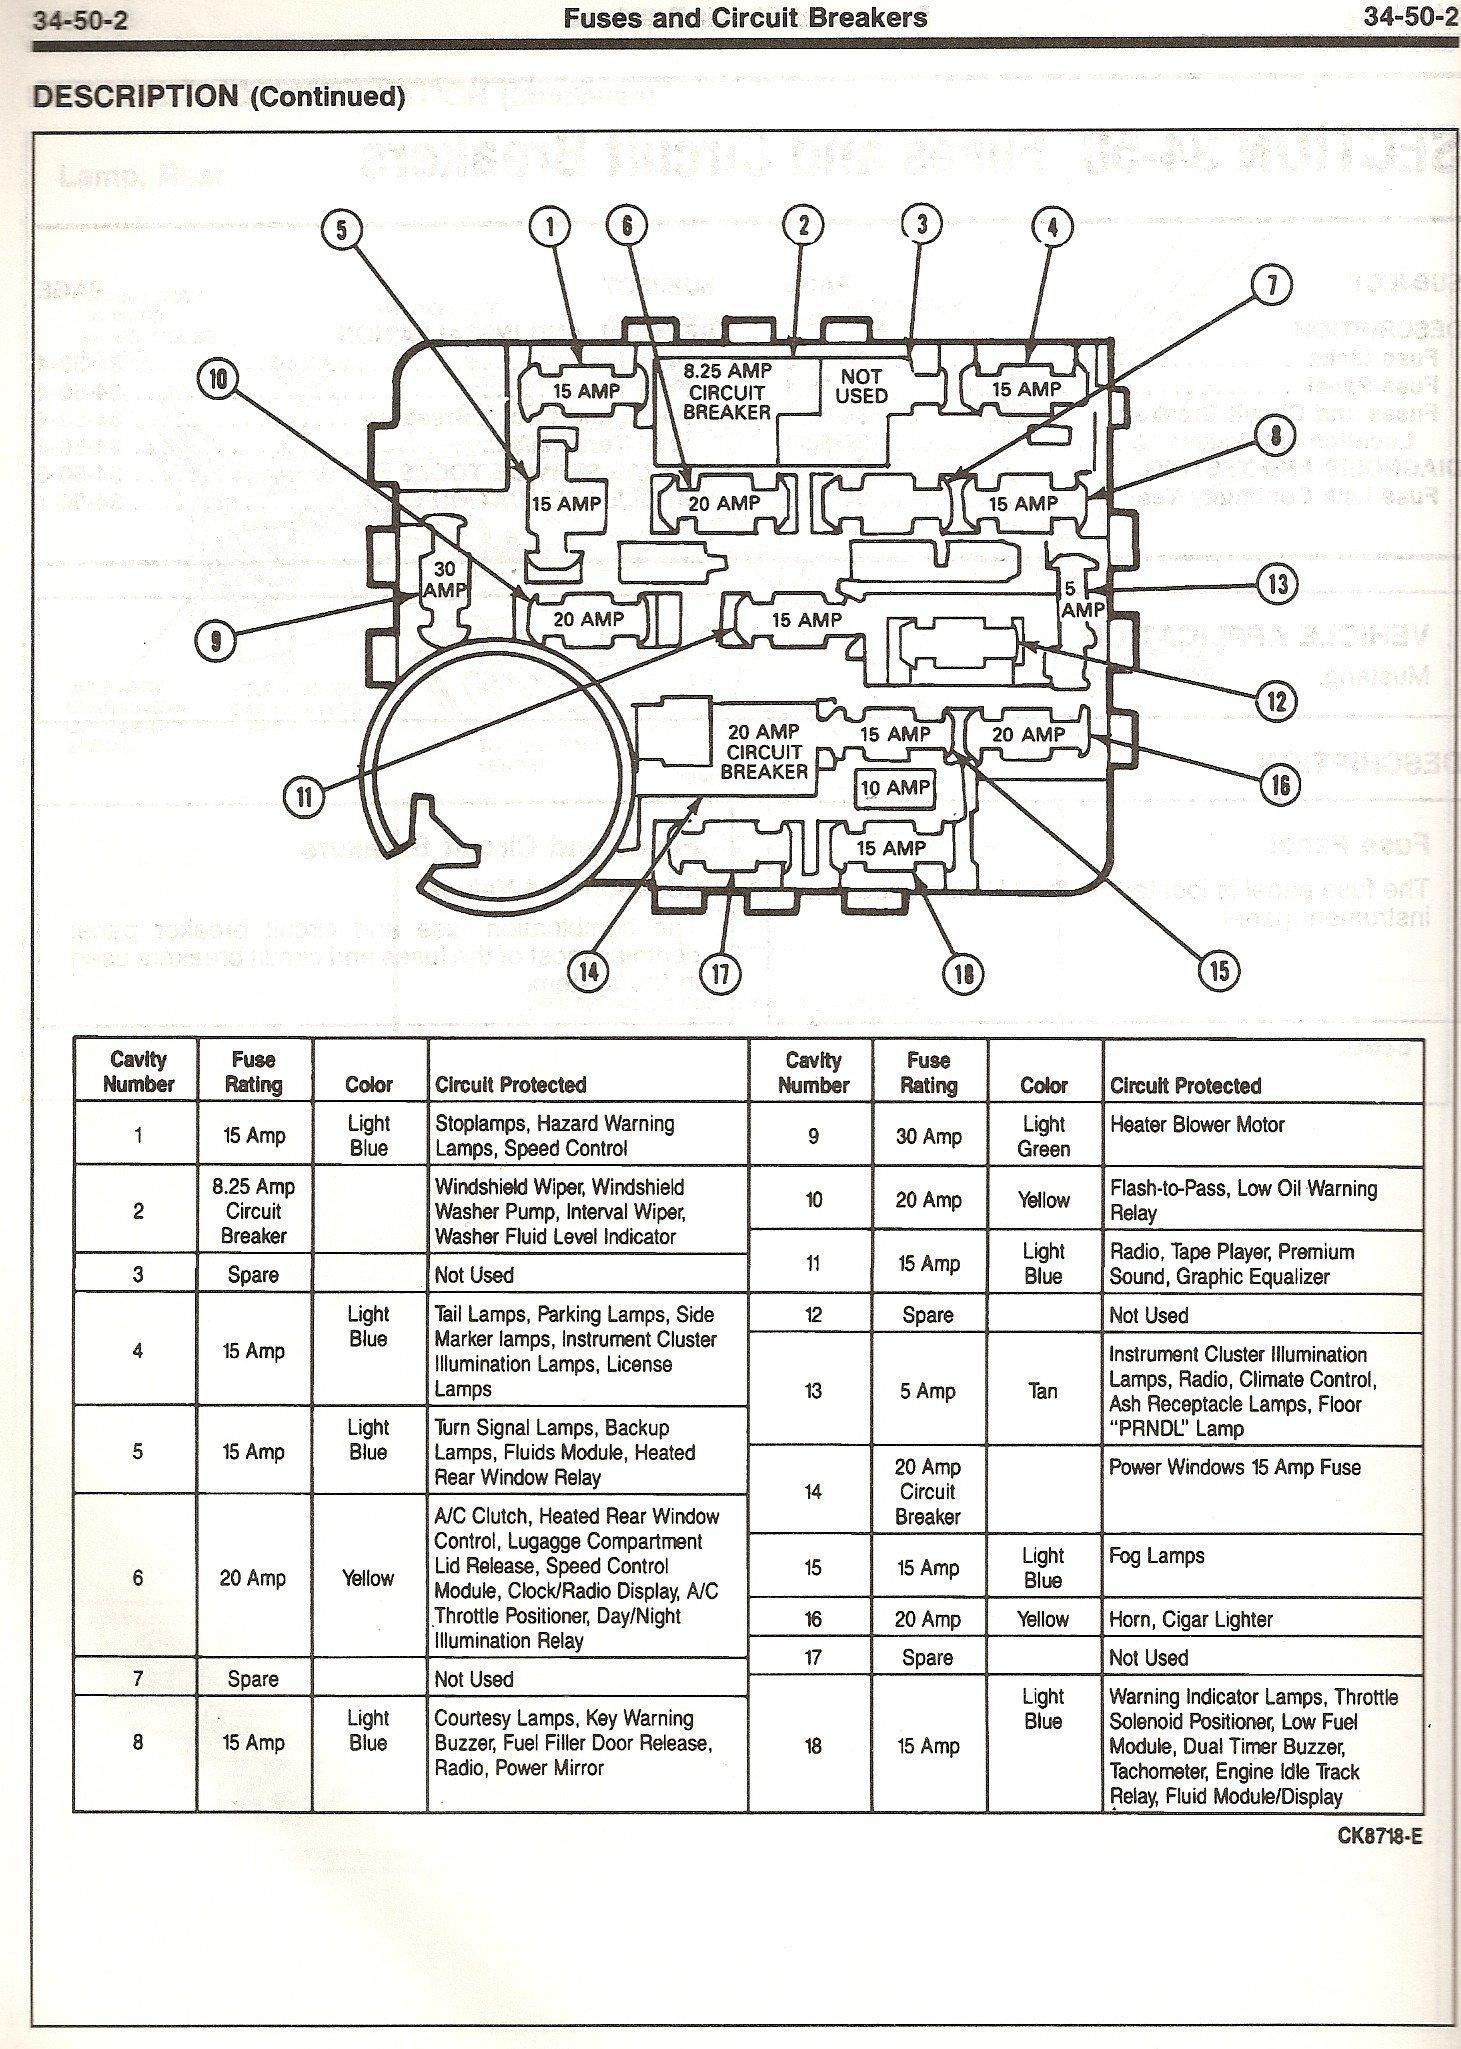 156261d1337885506 93 lx 5 0 no dash lights help scan7 93 lx 5 0 no dash lights help ford mustang forum 2001 mustang gt under dash fuse box diagram at readyjetset.co